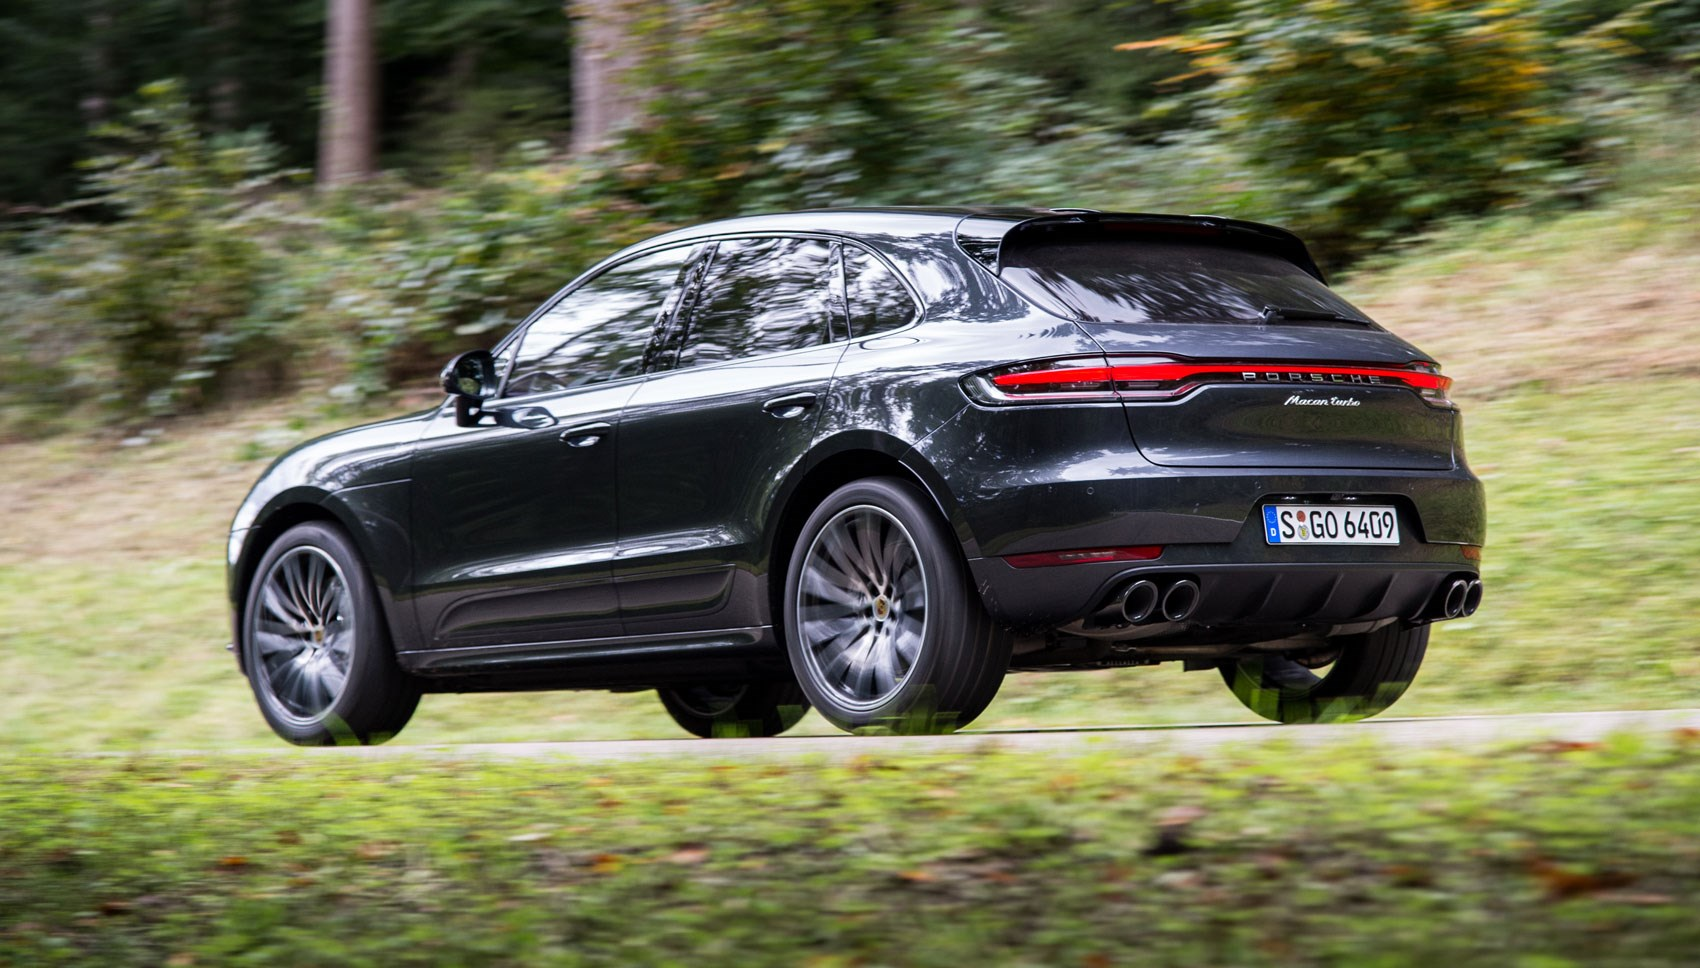 Macan Turbo rear tracking